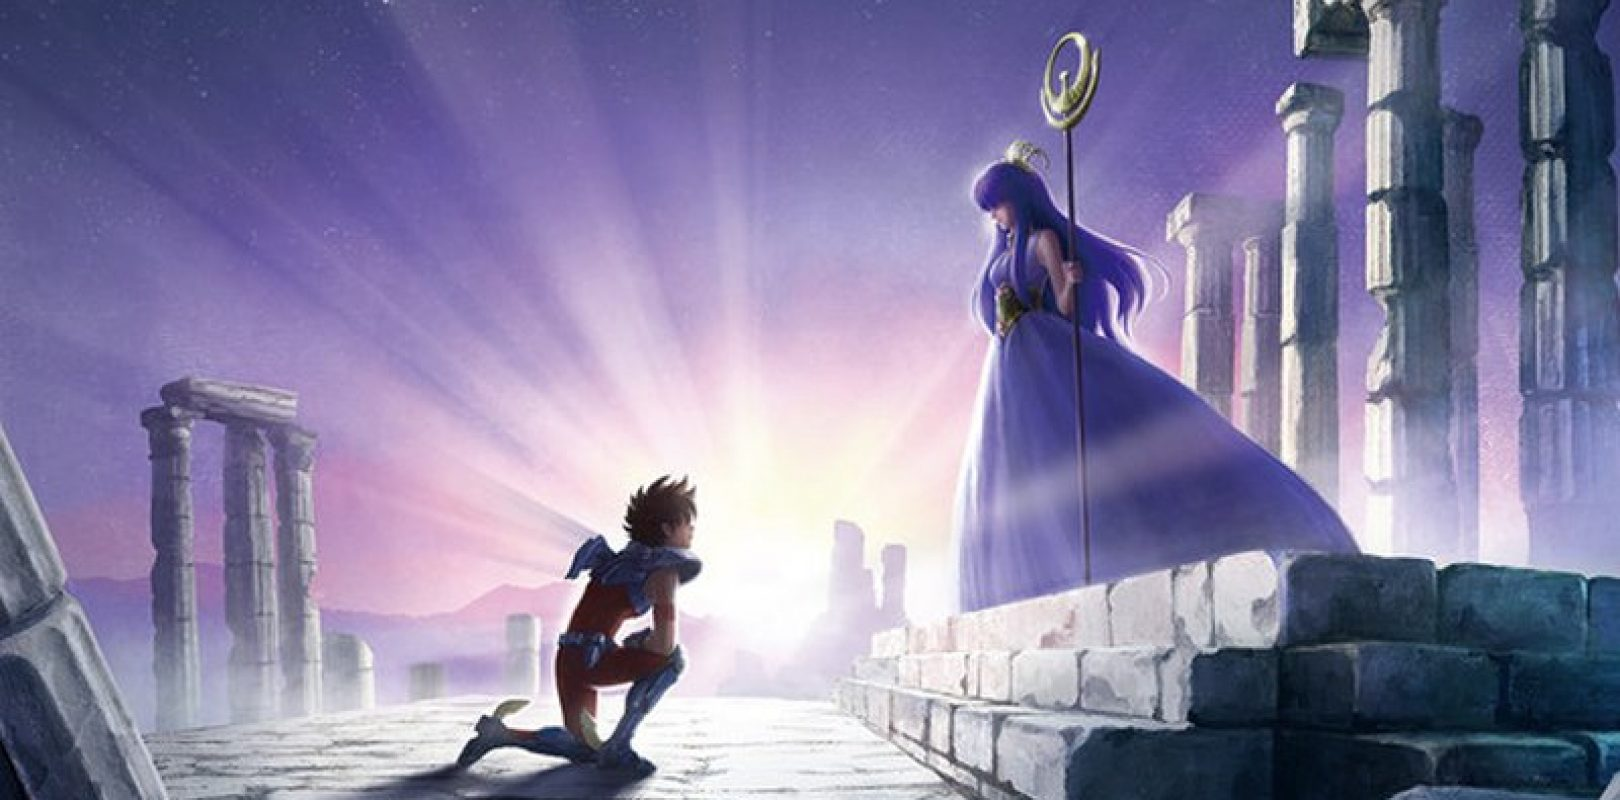 Saint Seiya netflix - Athena and Seya